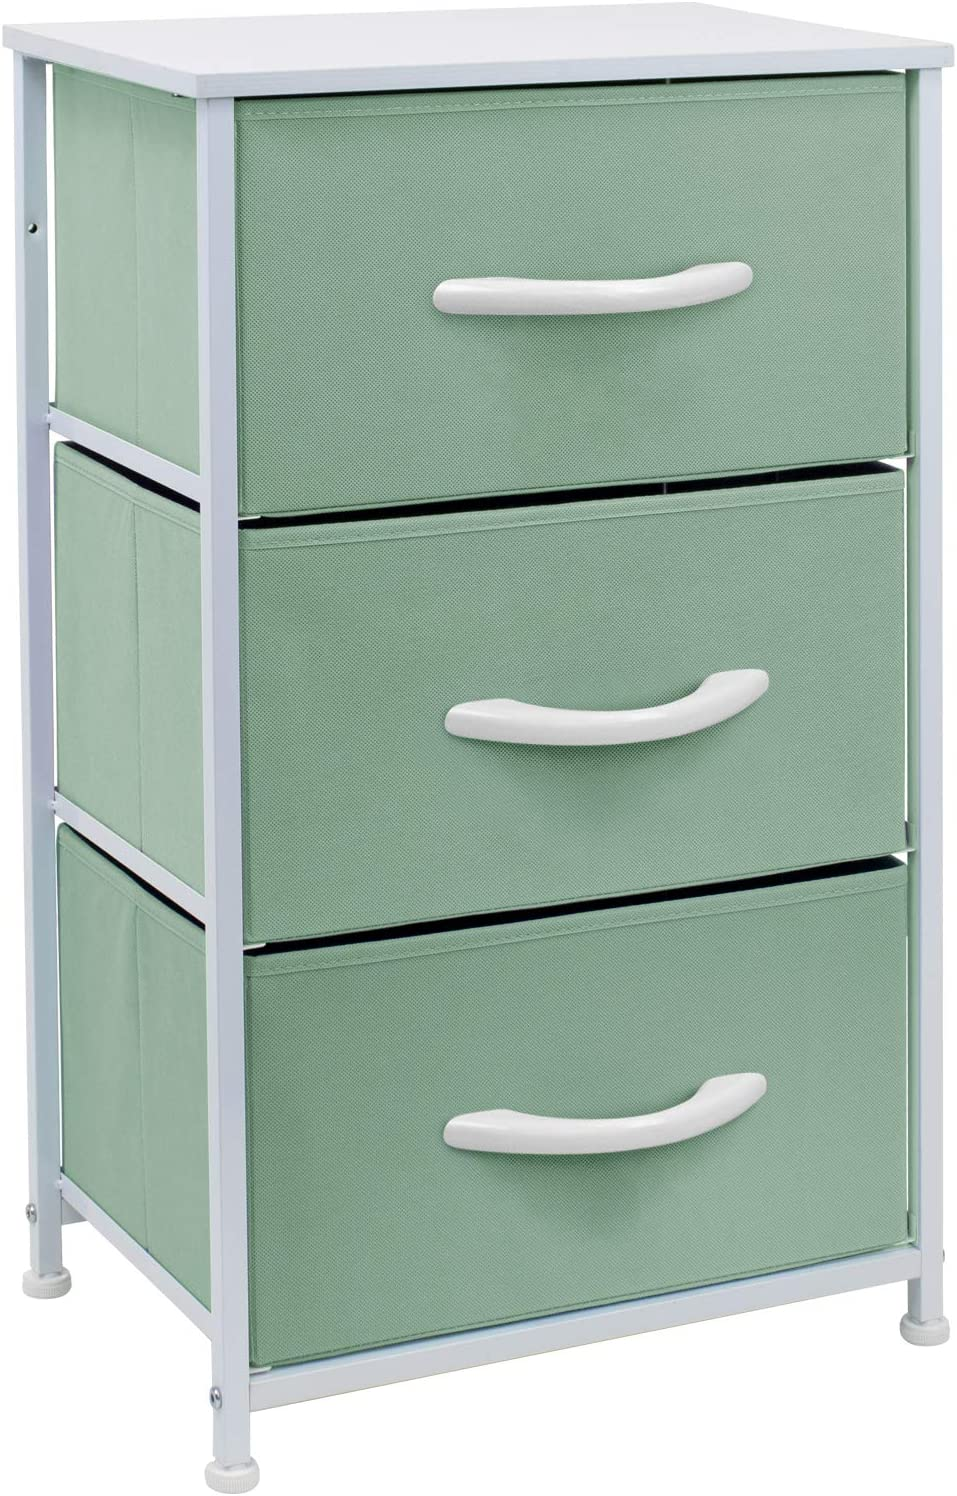 Sorbus Nightstand with 3 Drawers - Bedside Furniture & Accent End Table Chest for Home, Bedroom Accessories, Office, College Dorm, Steel Frame, Wood Top, Easy Pull Fabric Bins (Pastel Teal)